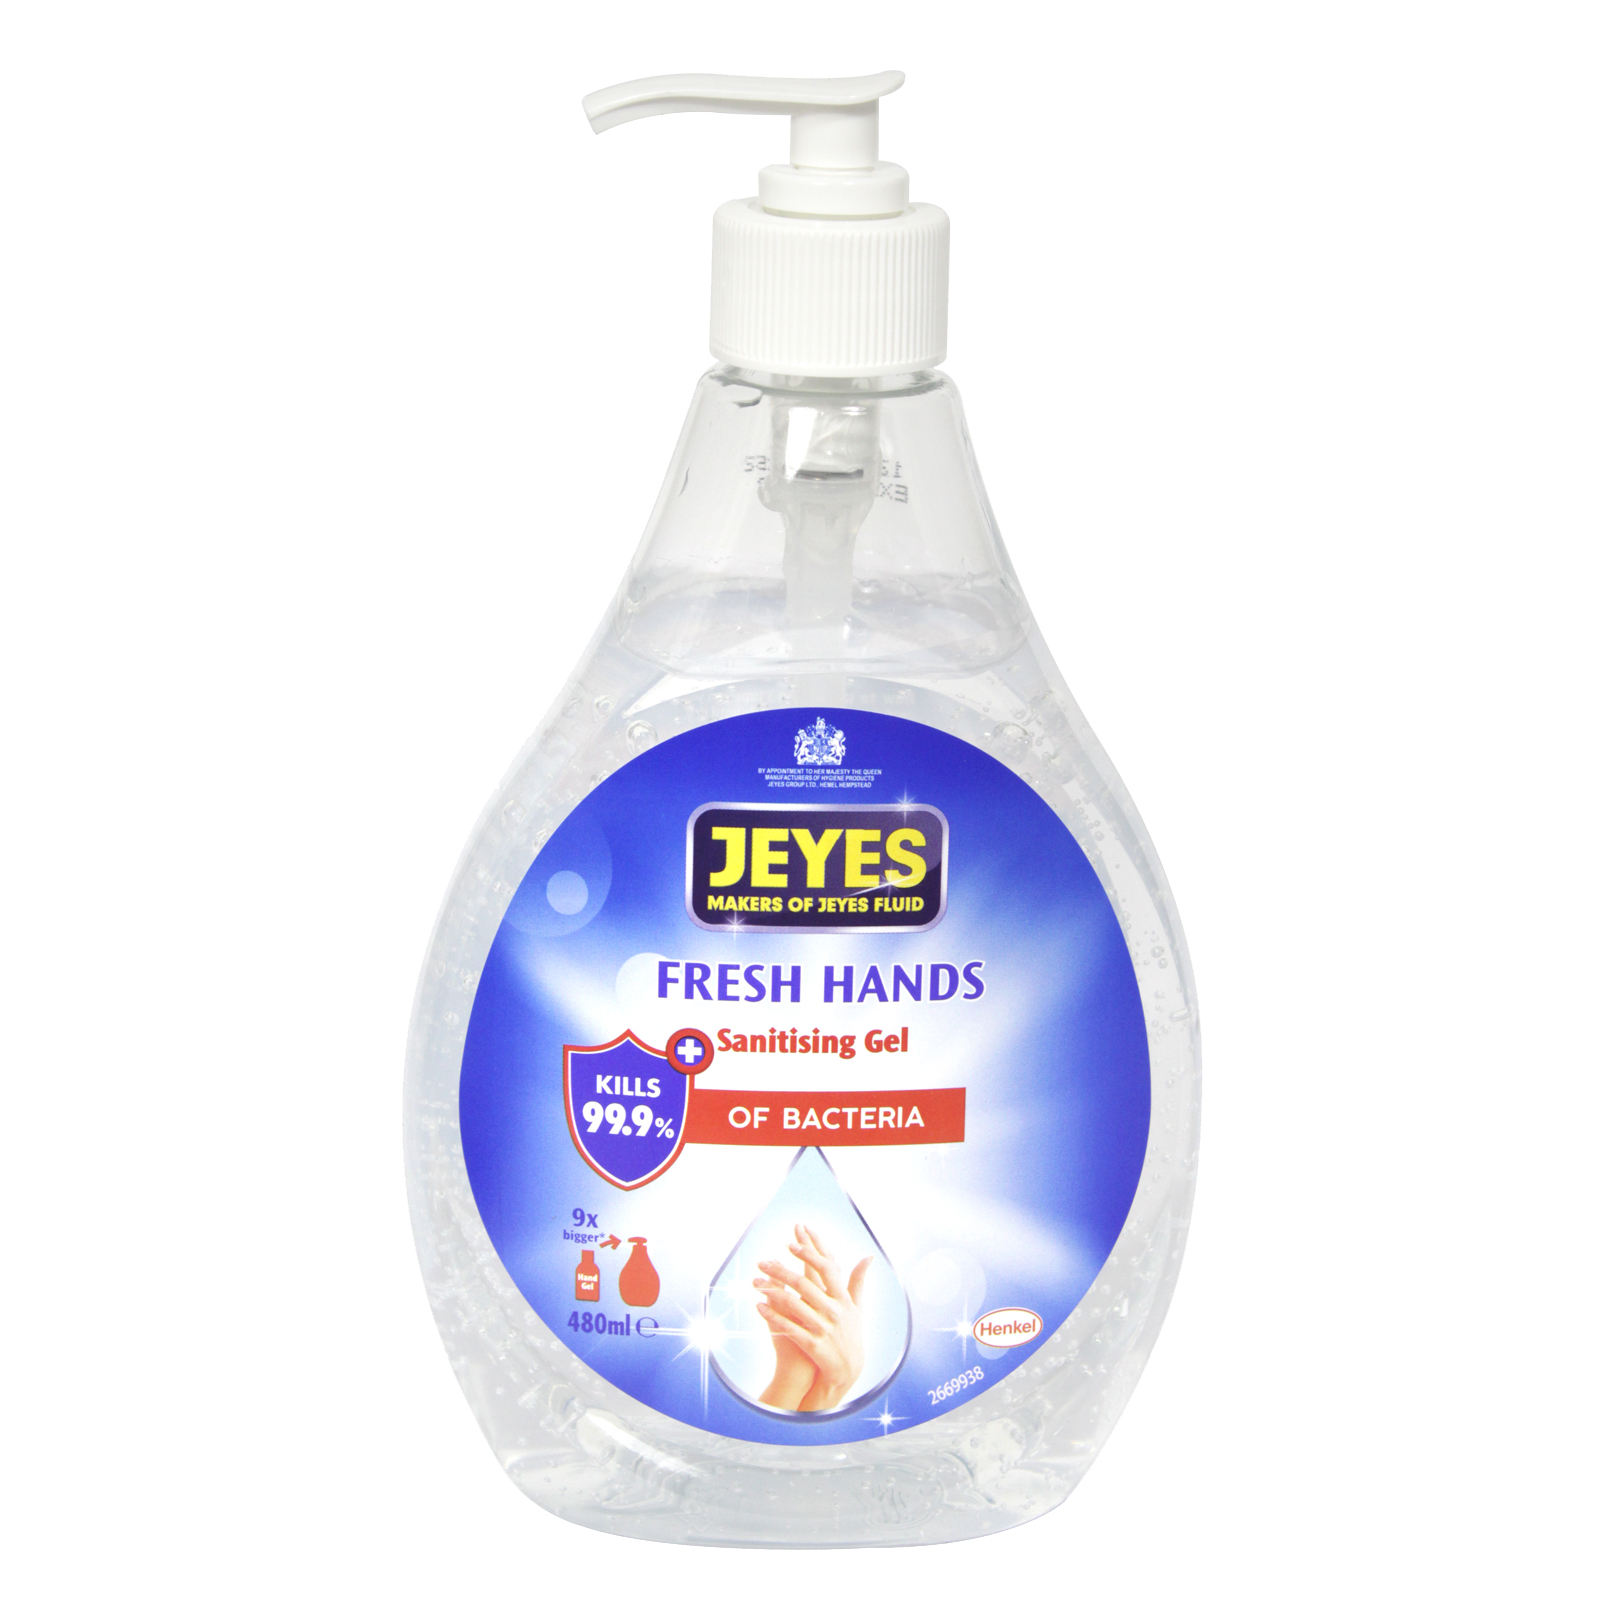 JEYES FRESH HANDS SANITISING HAND GEL 480ML PUMP 65% ALCOHOL